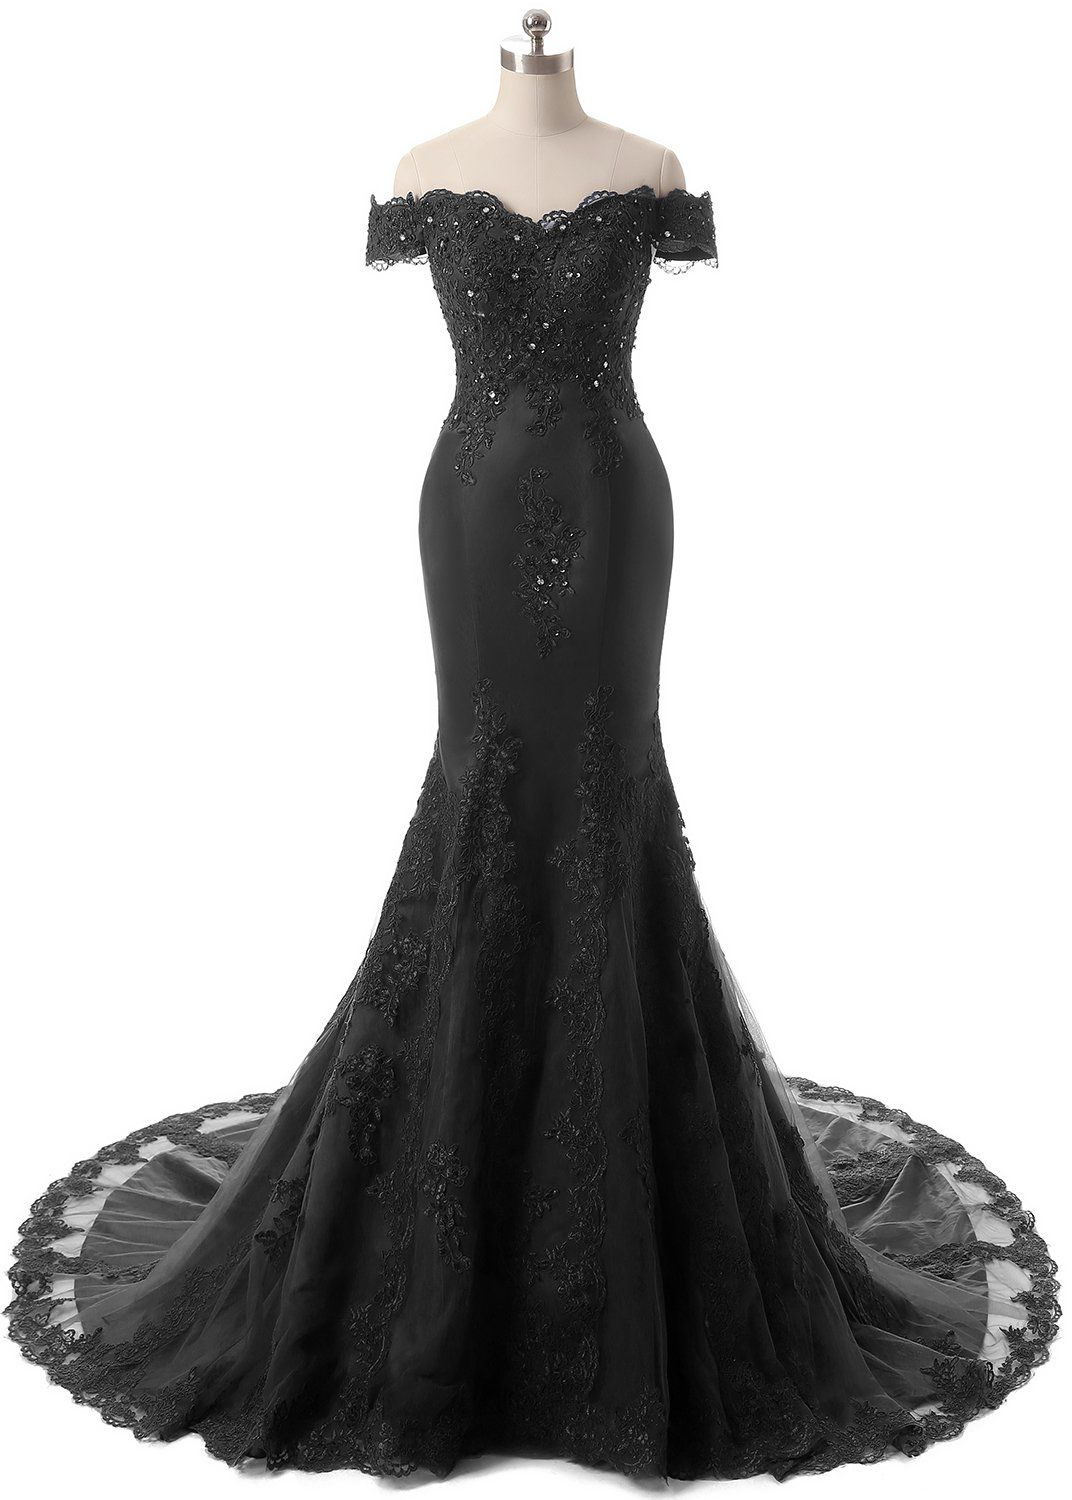 Himoda womens v neckline beaded evening gowns mermaid lace prom